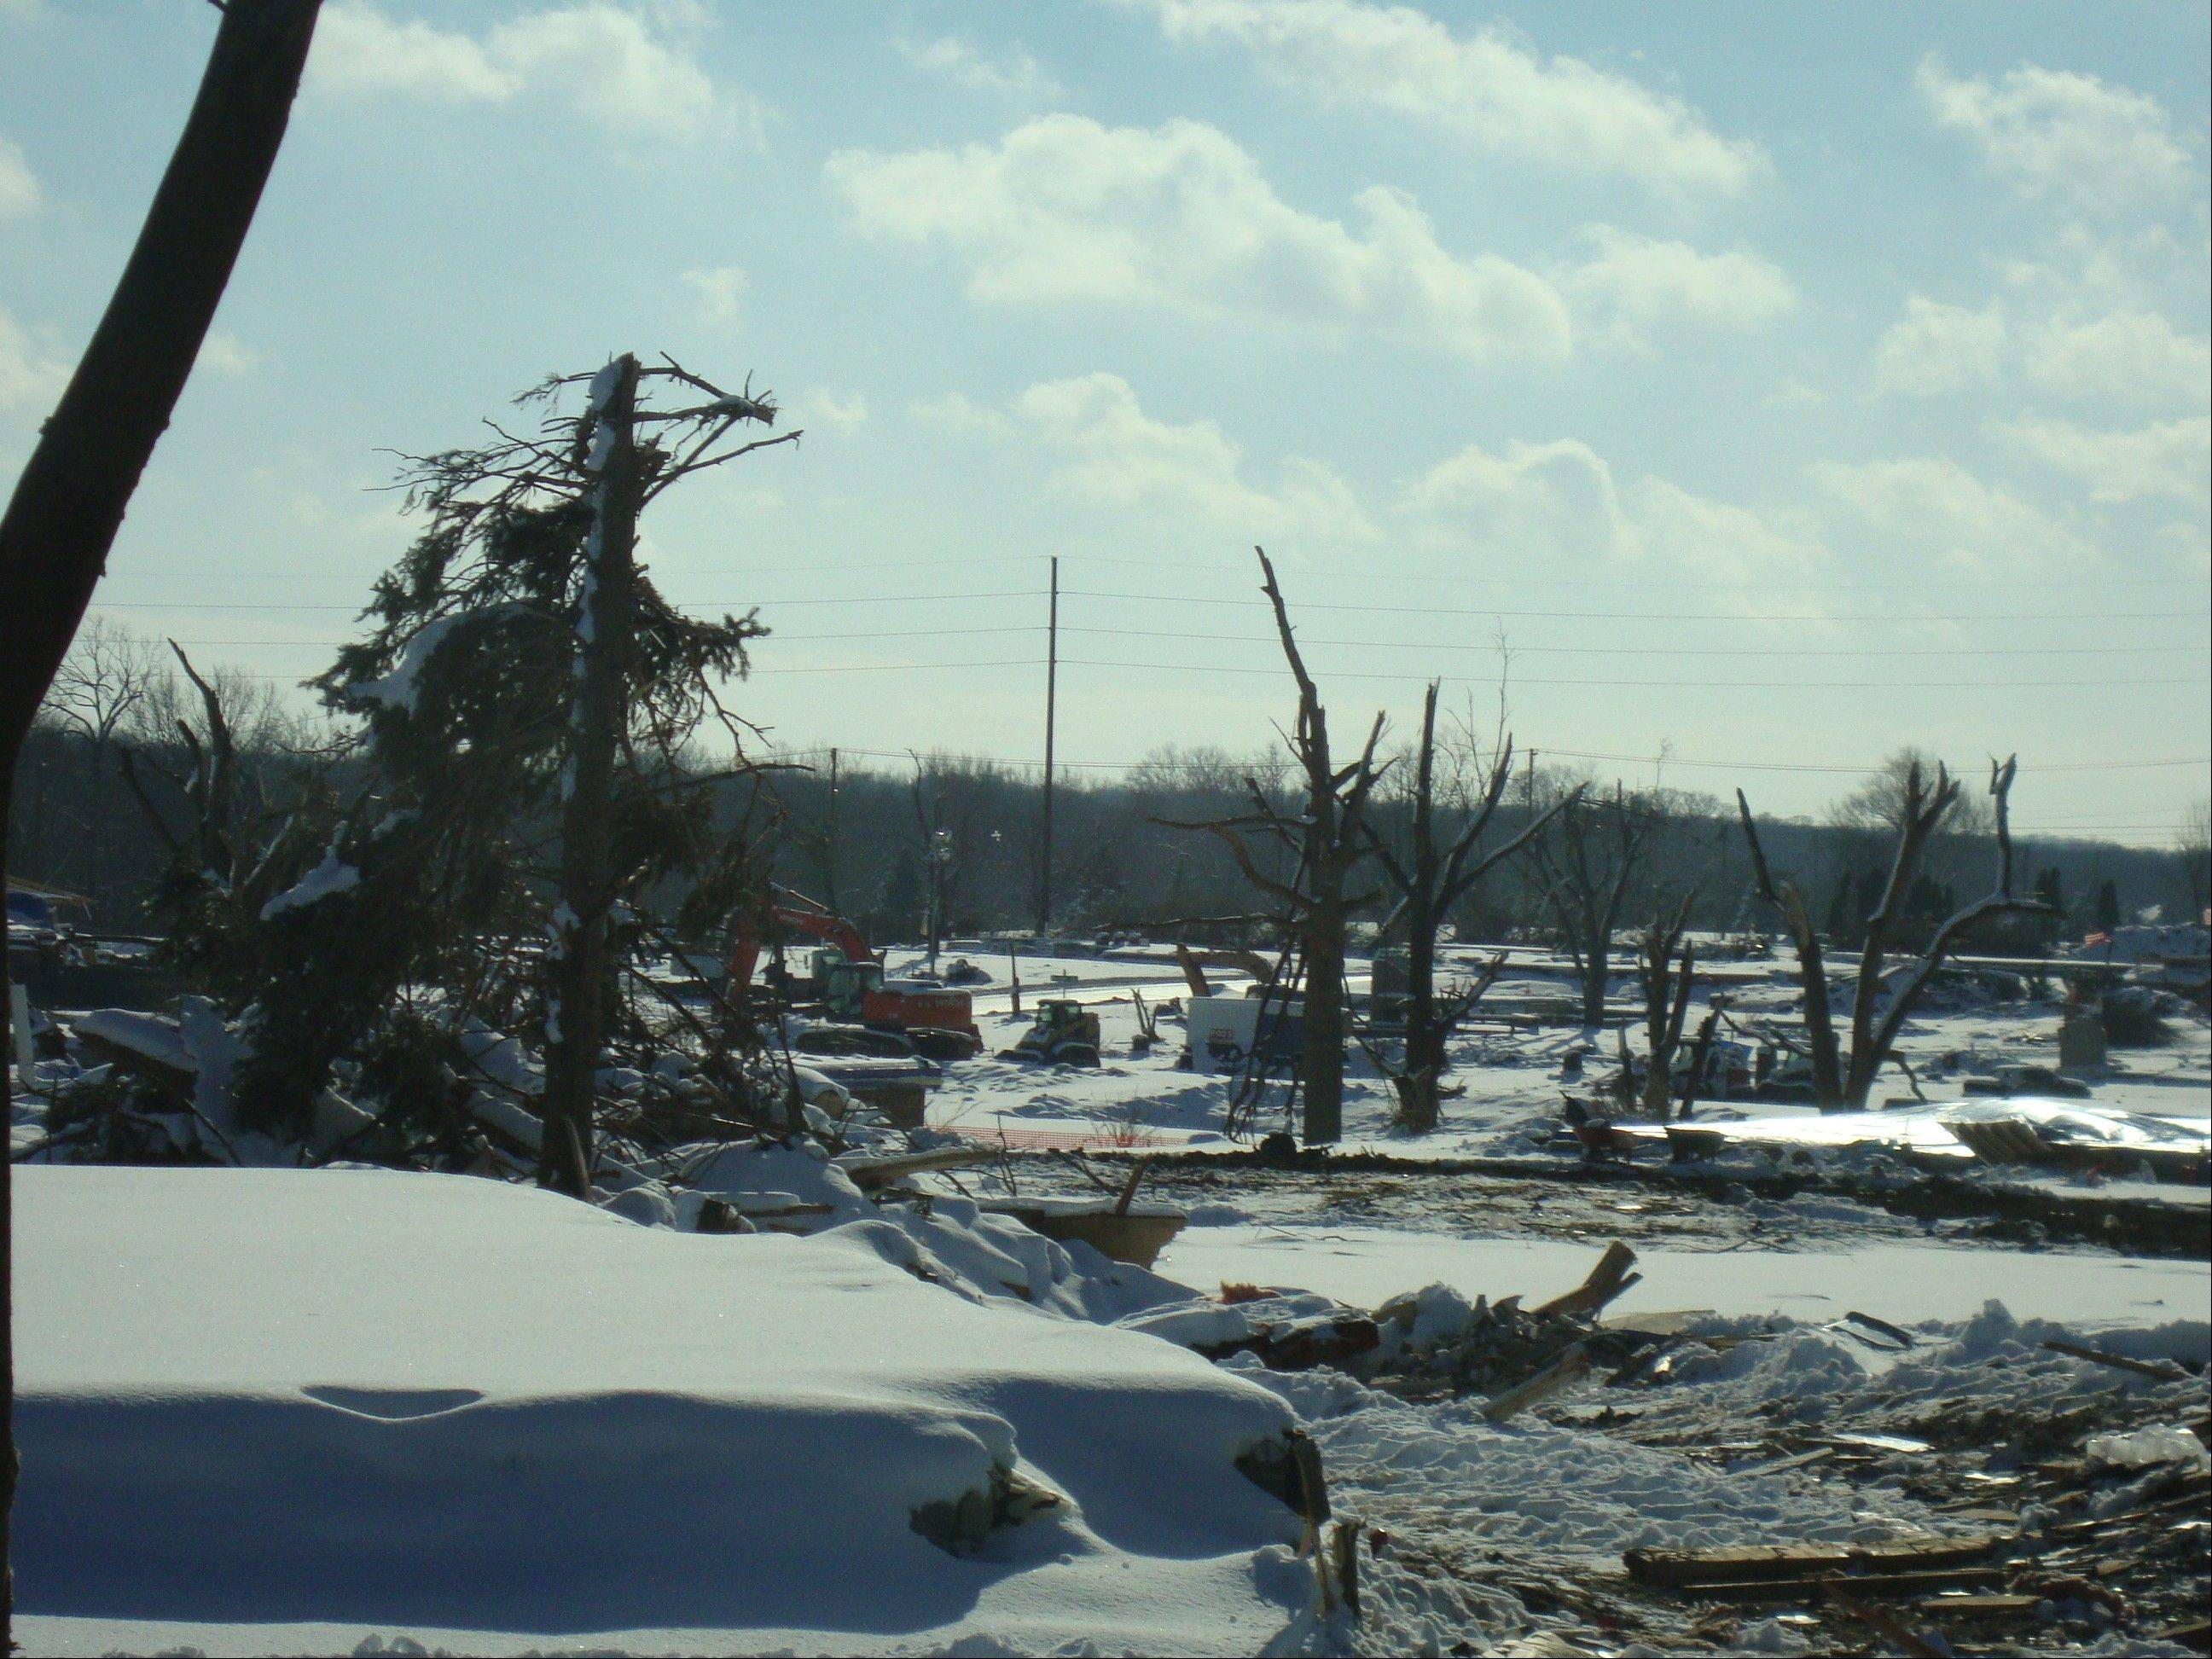 This photo shows tree damage in Washington, Ill., as it appeared on Dec. 18.